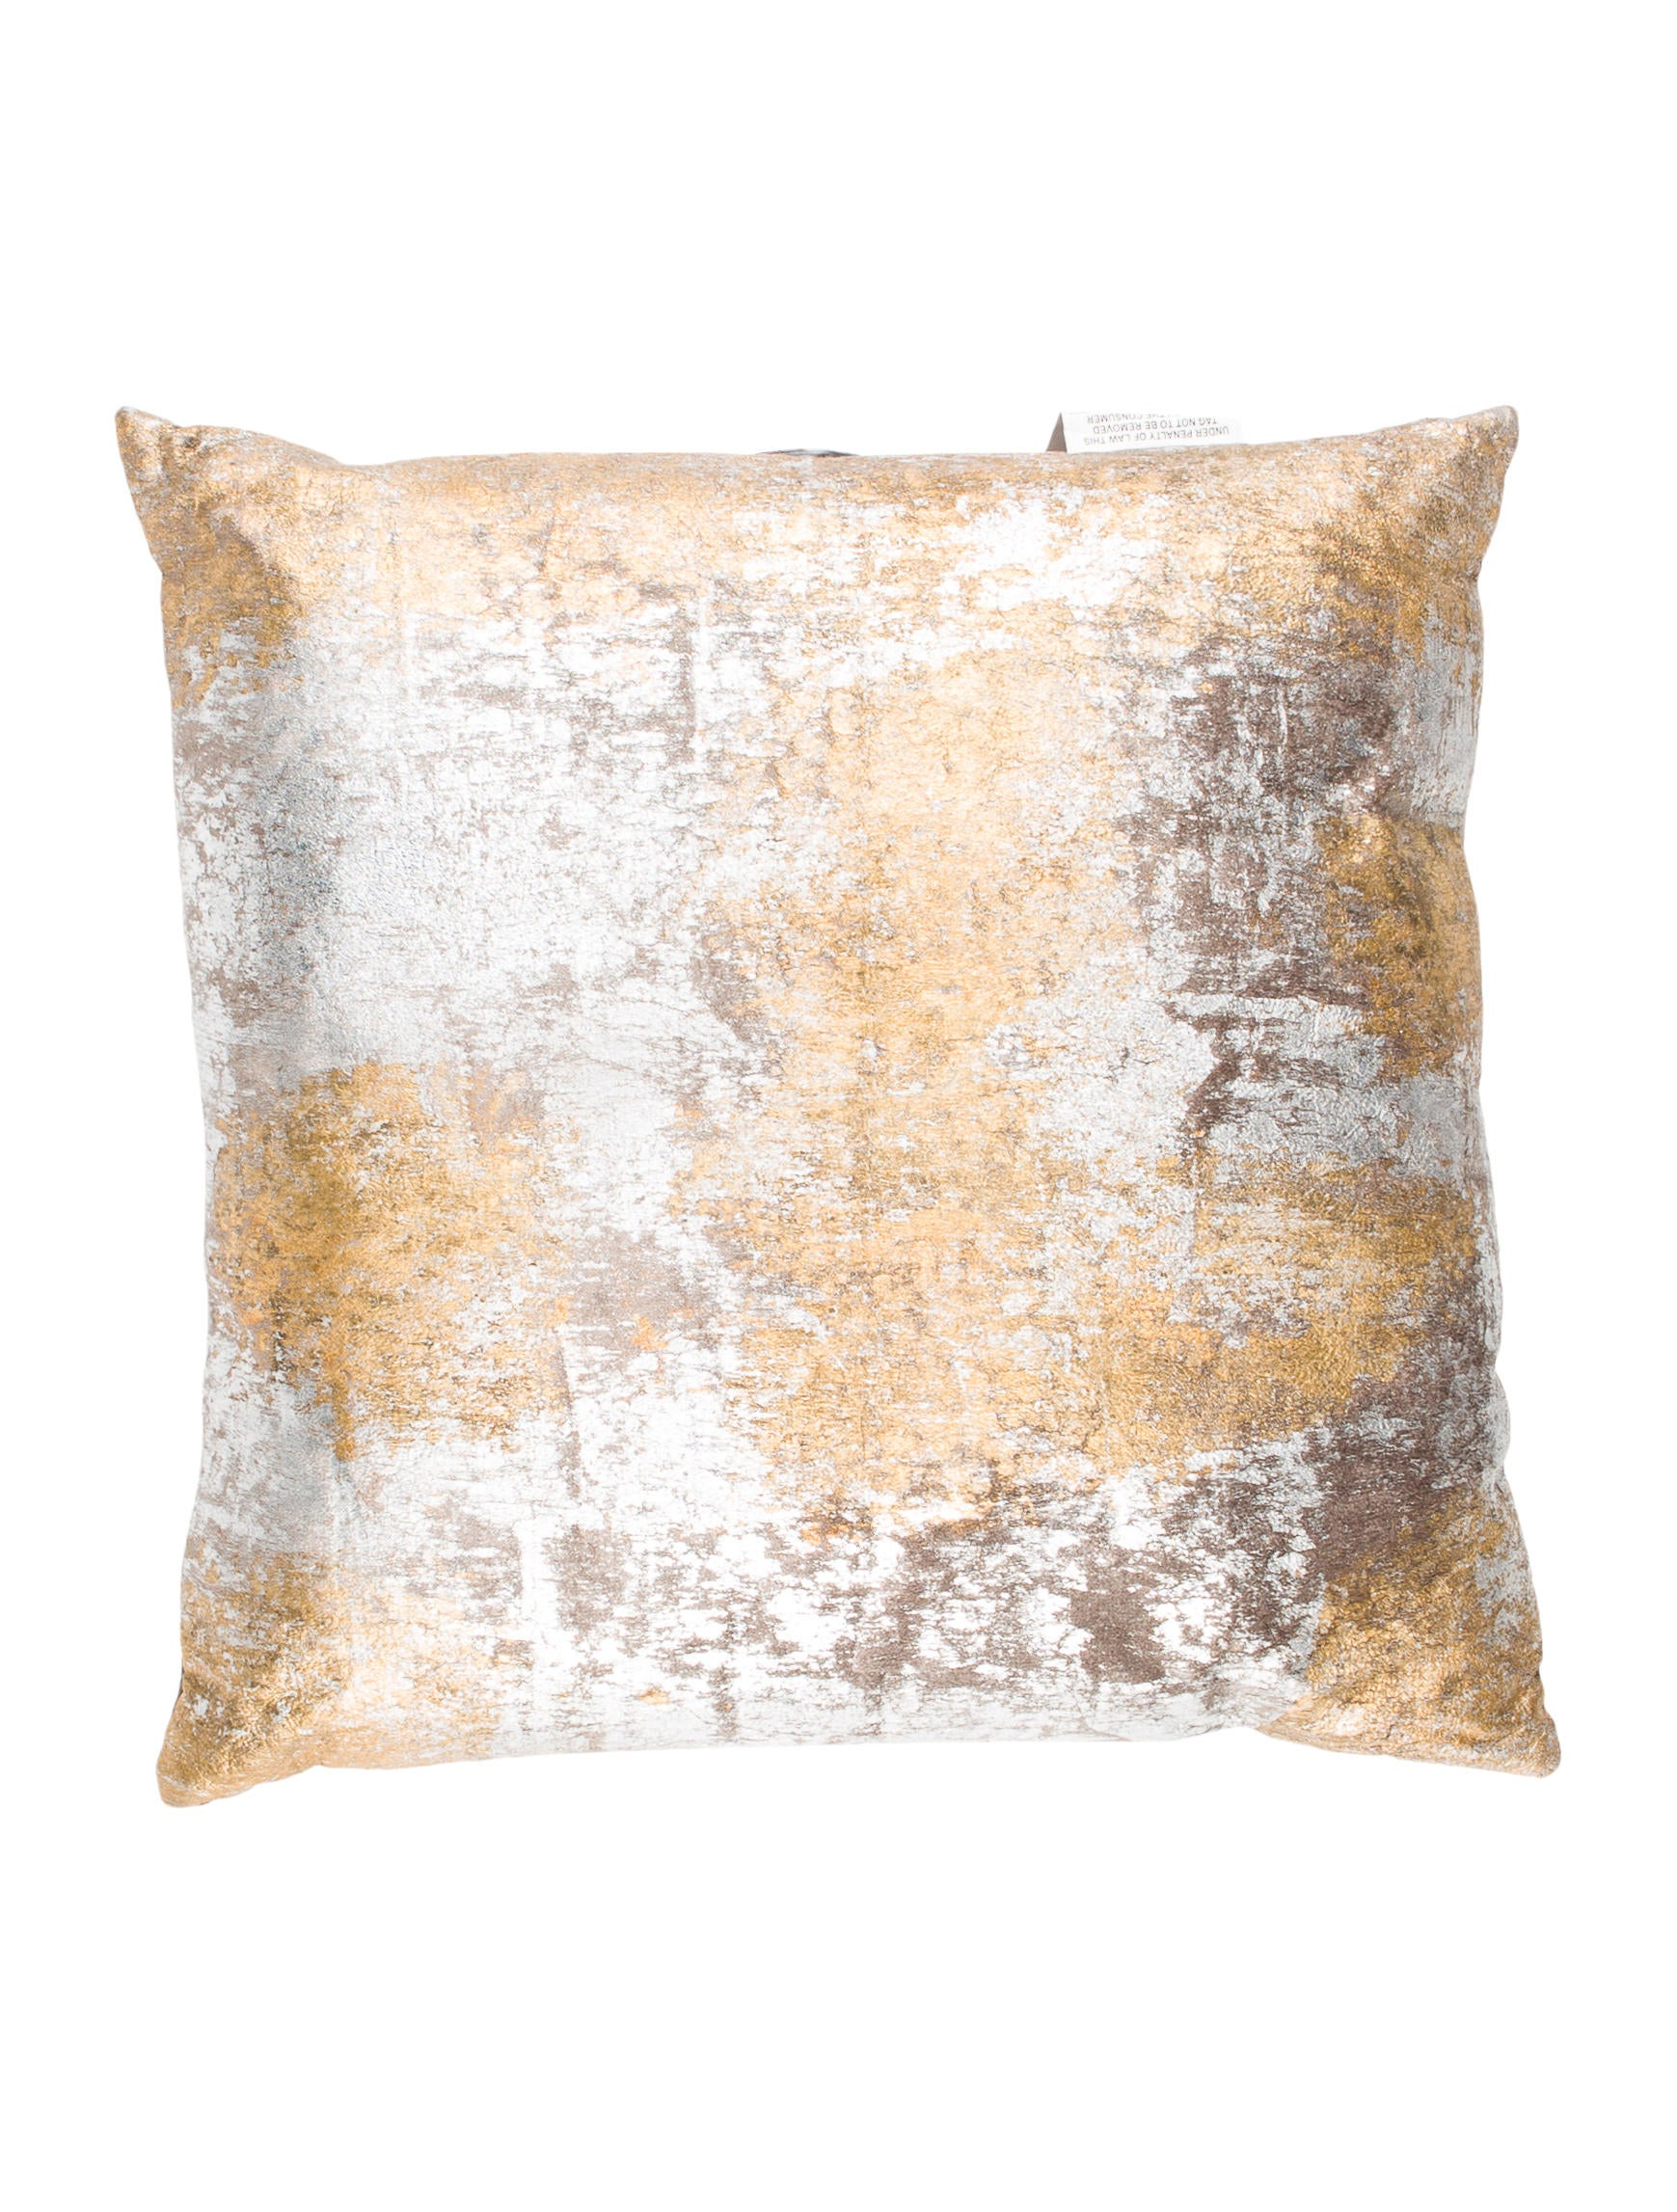 Distressed Velvet Throw Pillow